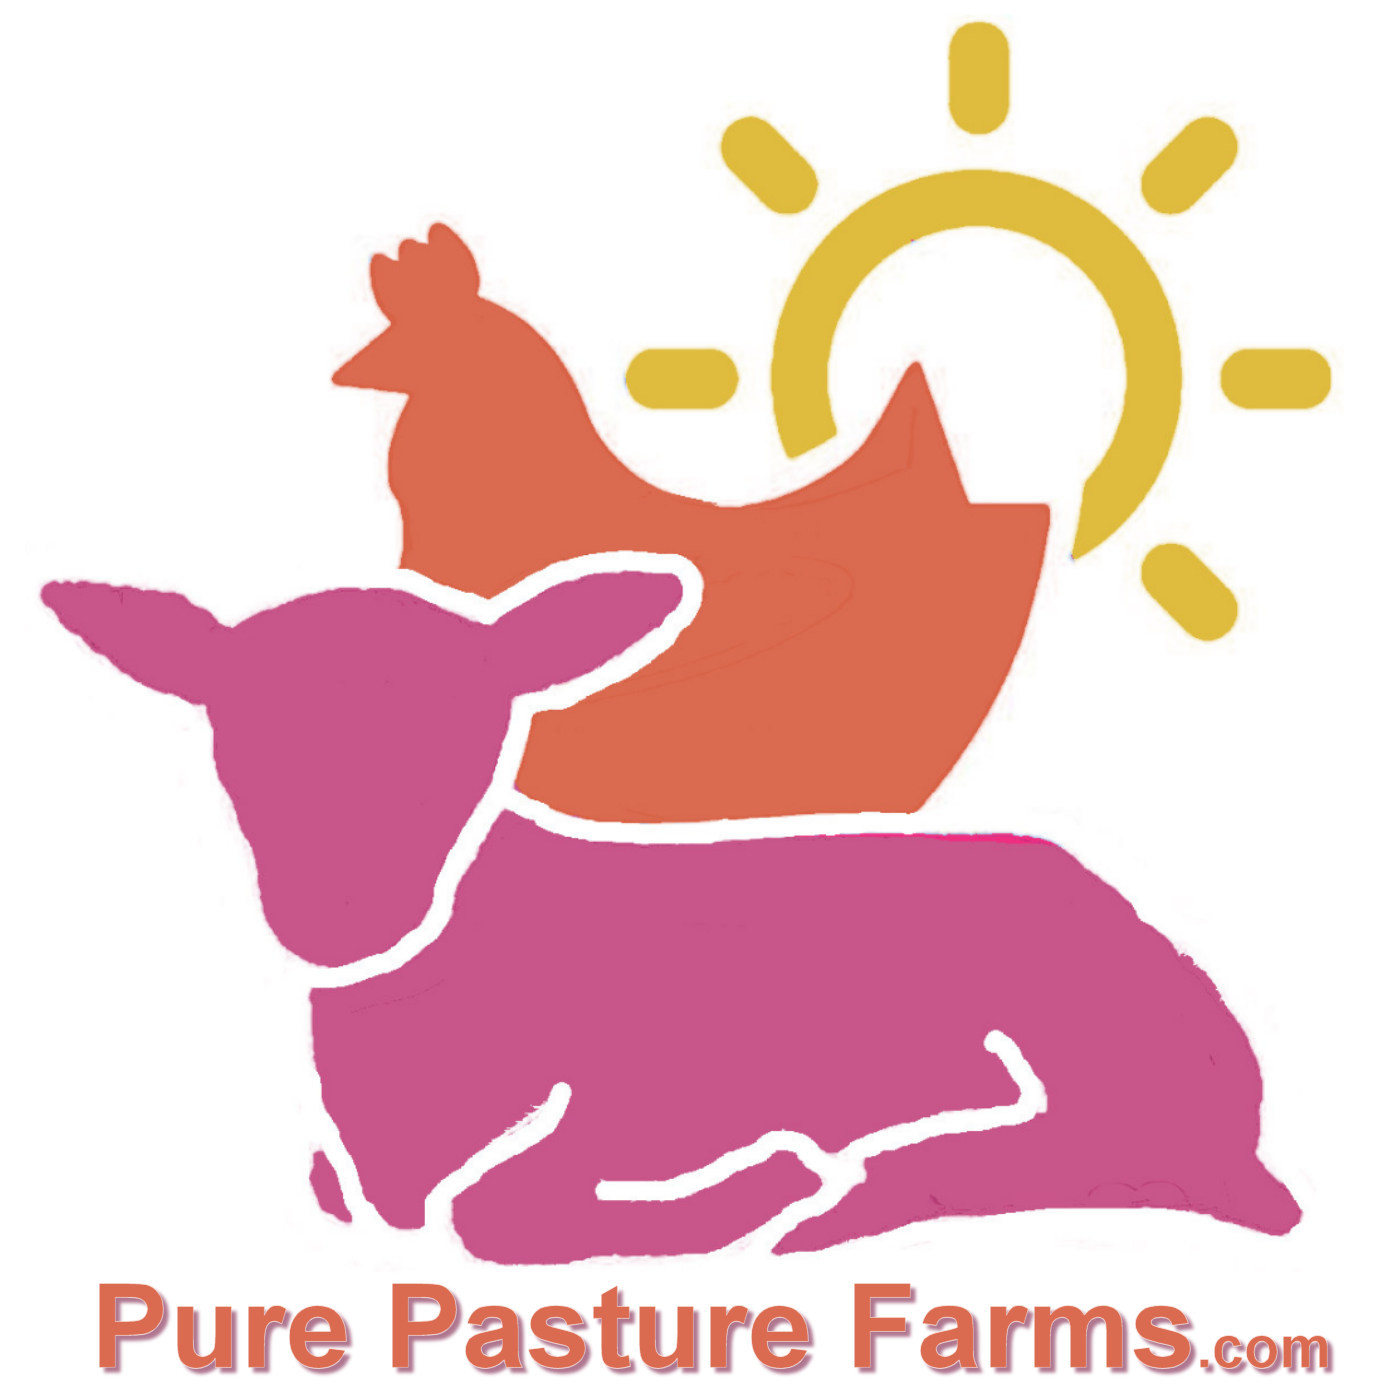 Pure Pasture Farms Logo